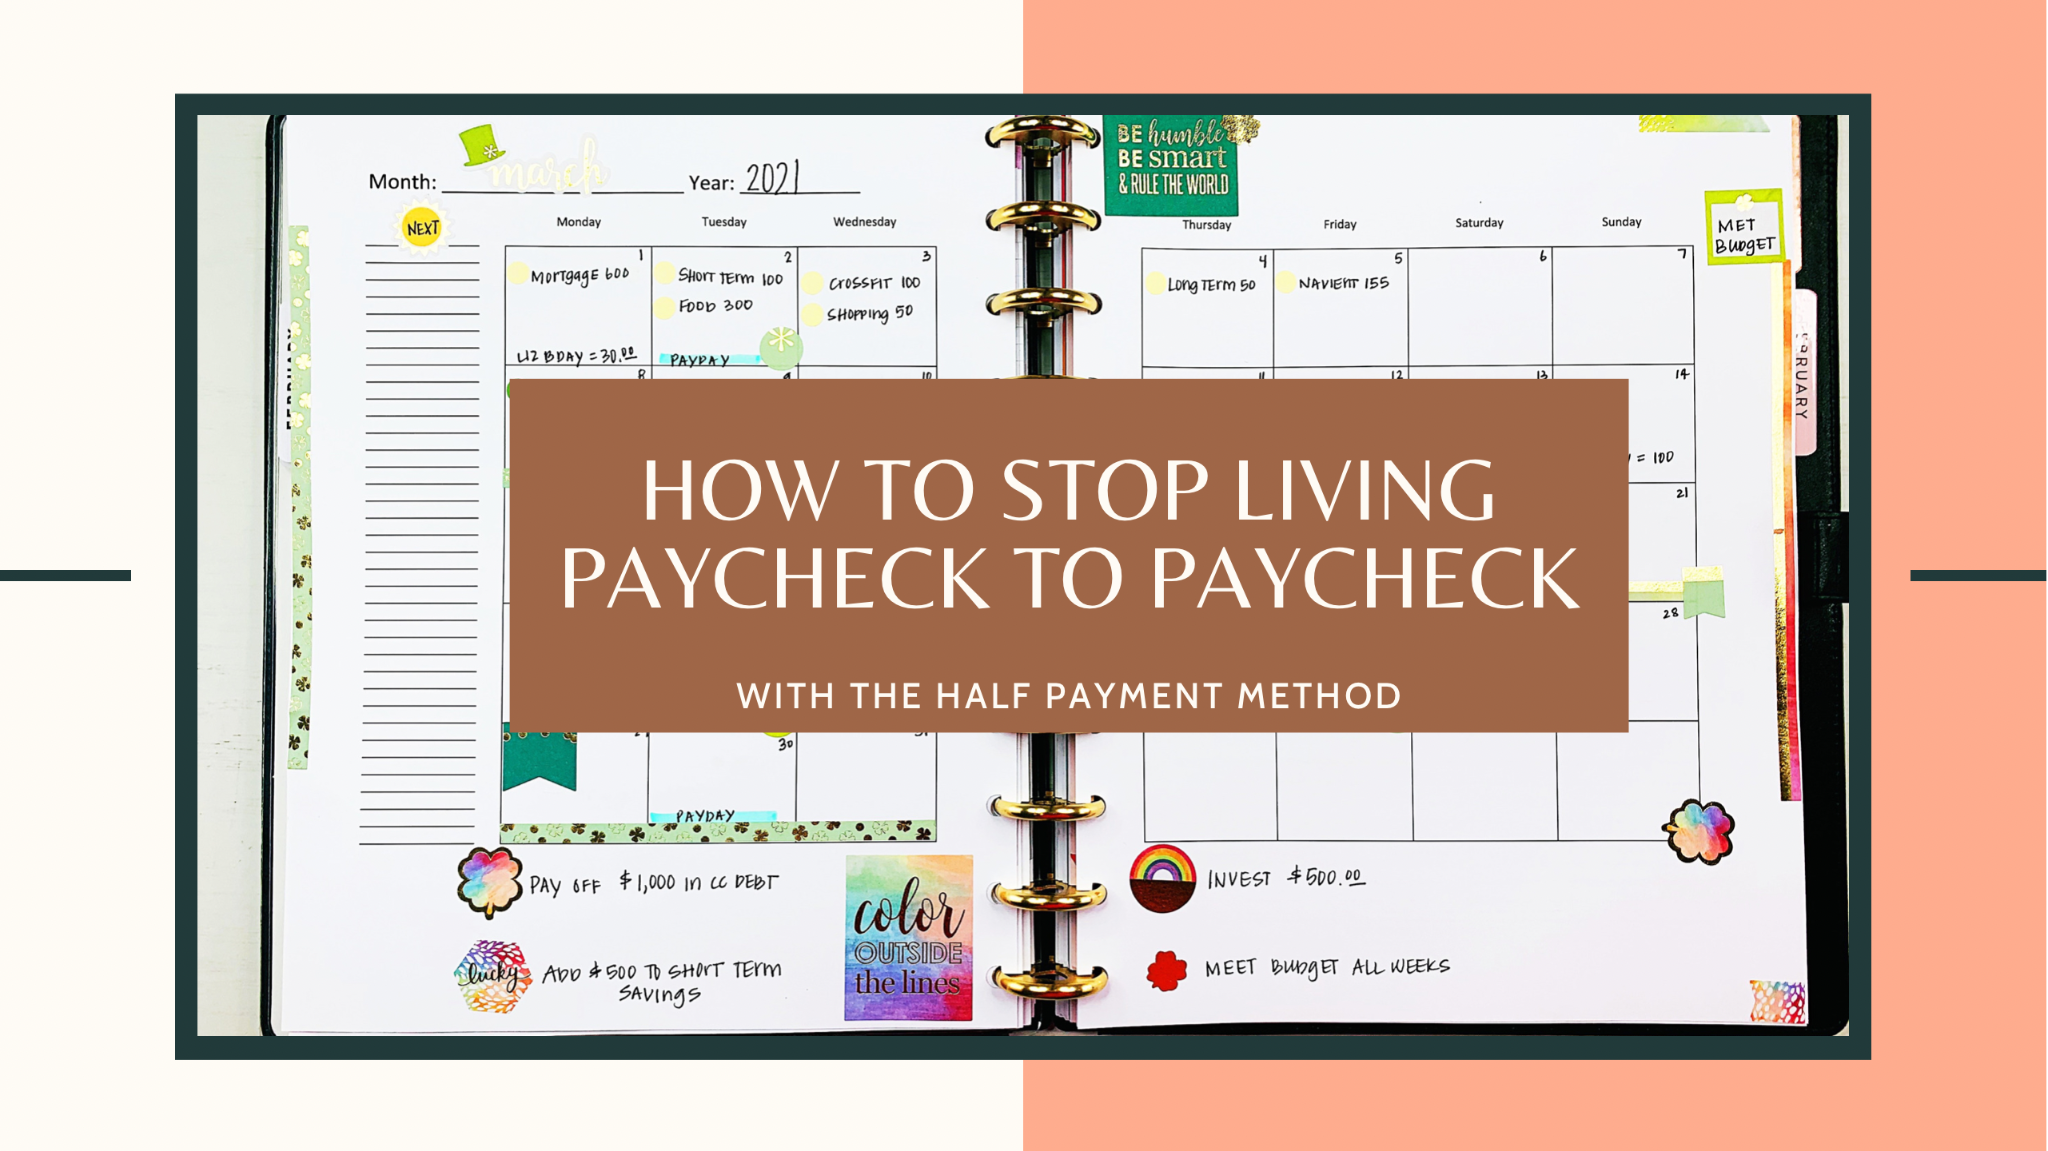 How To Stop Living Paycheck to Paycheck (With The Half Payment Budgeting Method)